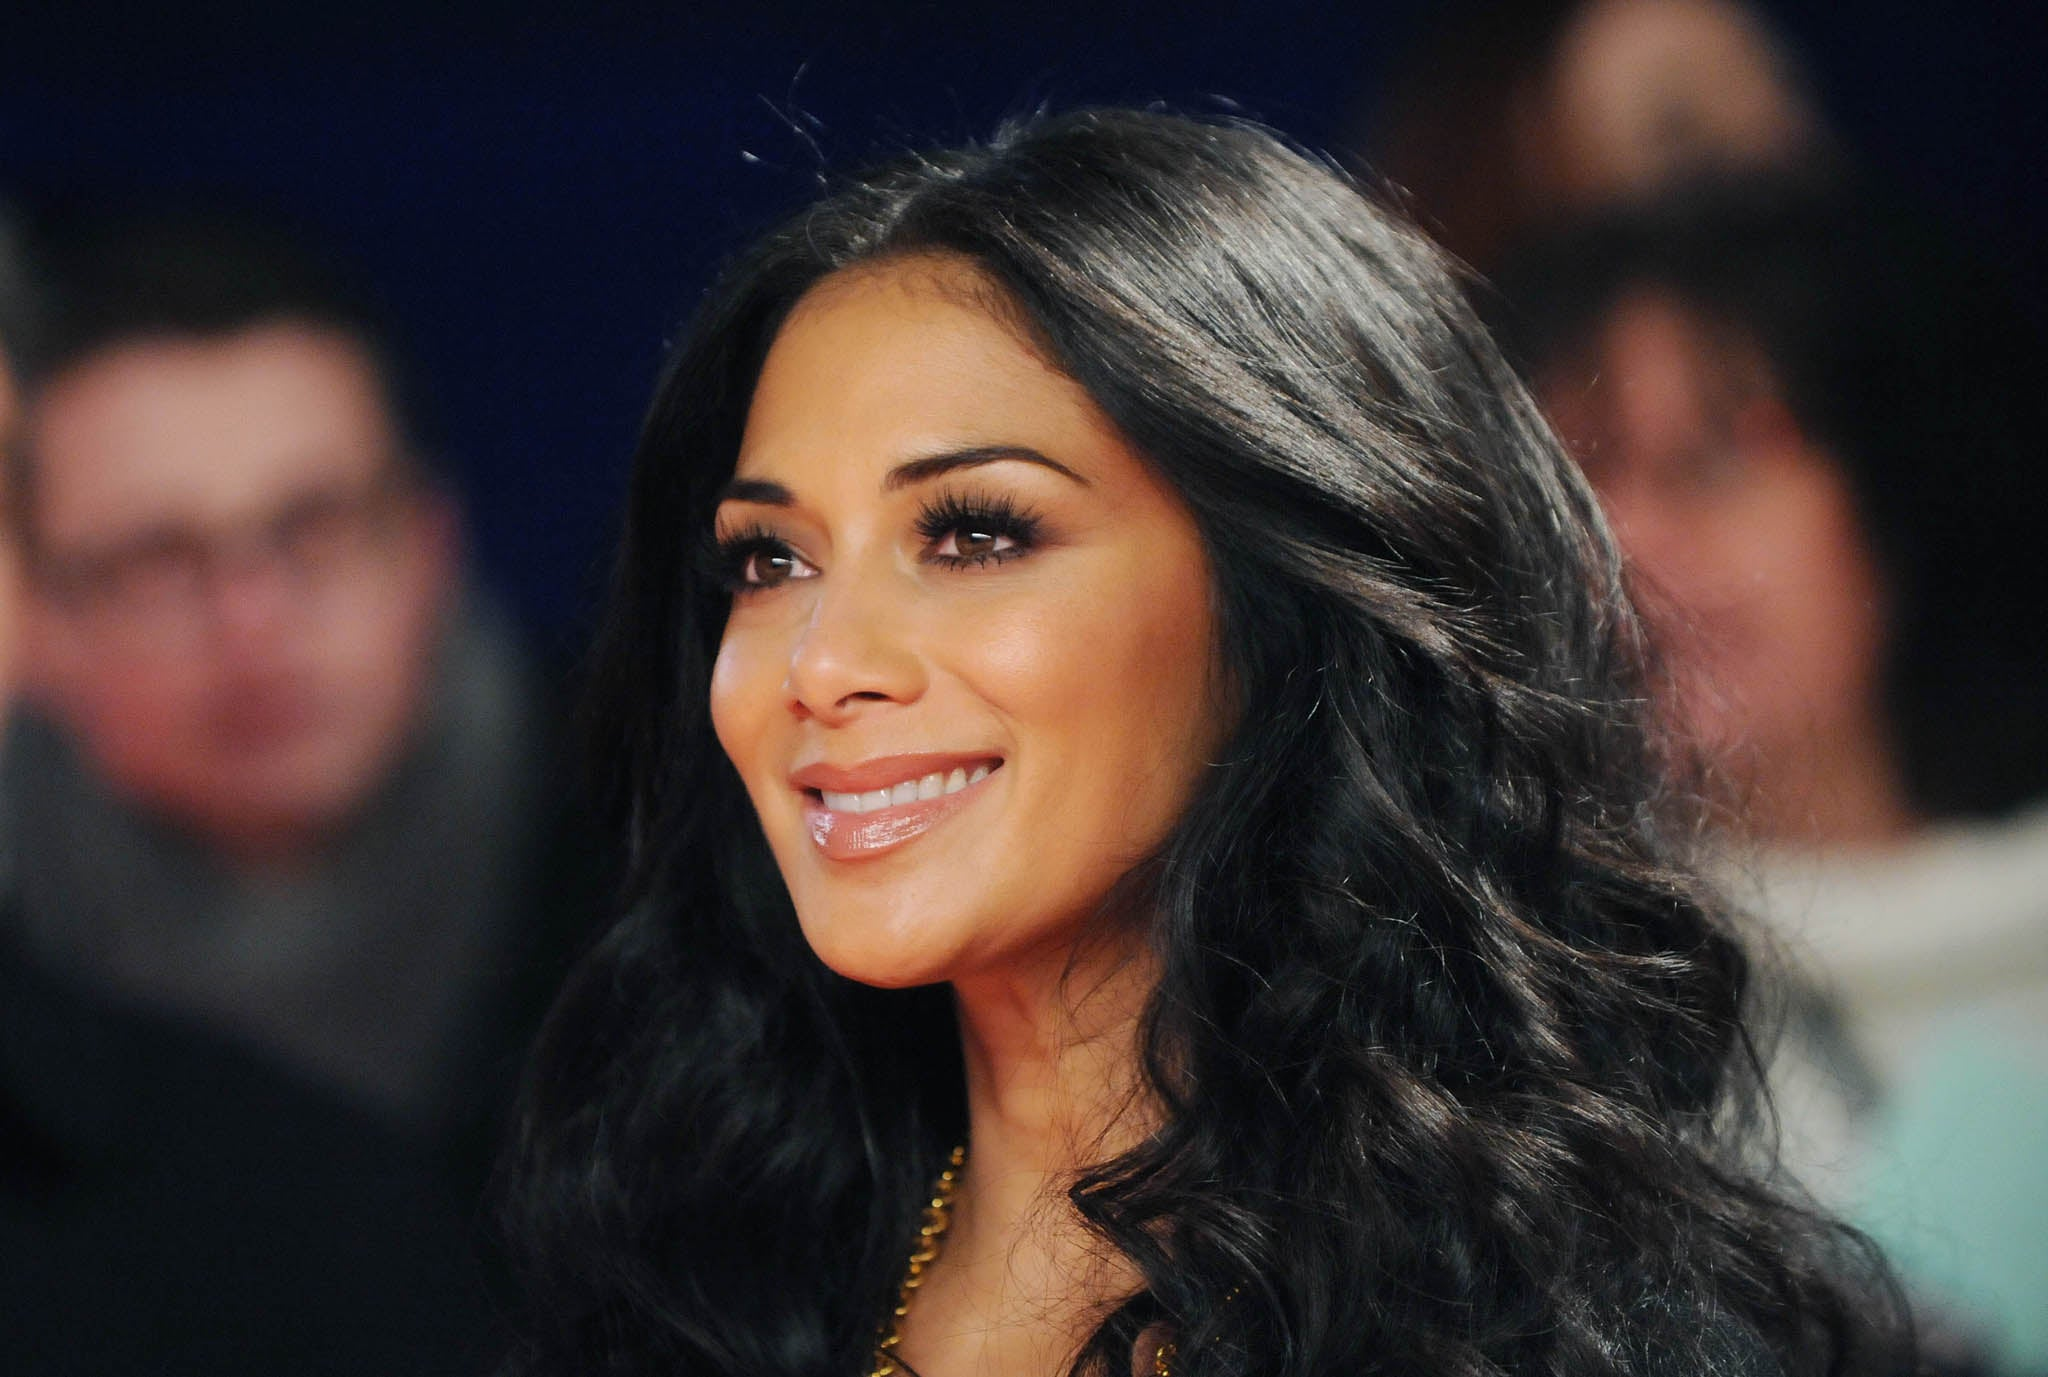 Who is Nicole Scherzinger dating Nicole Scherzinger